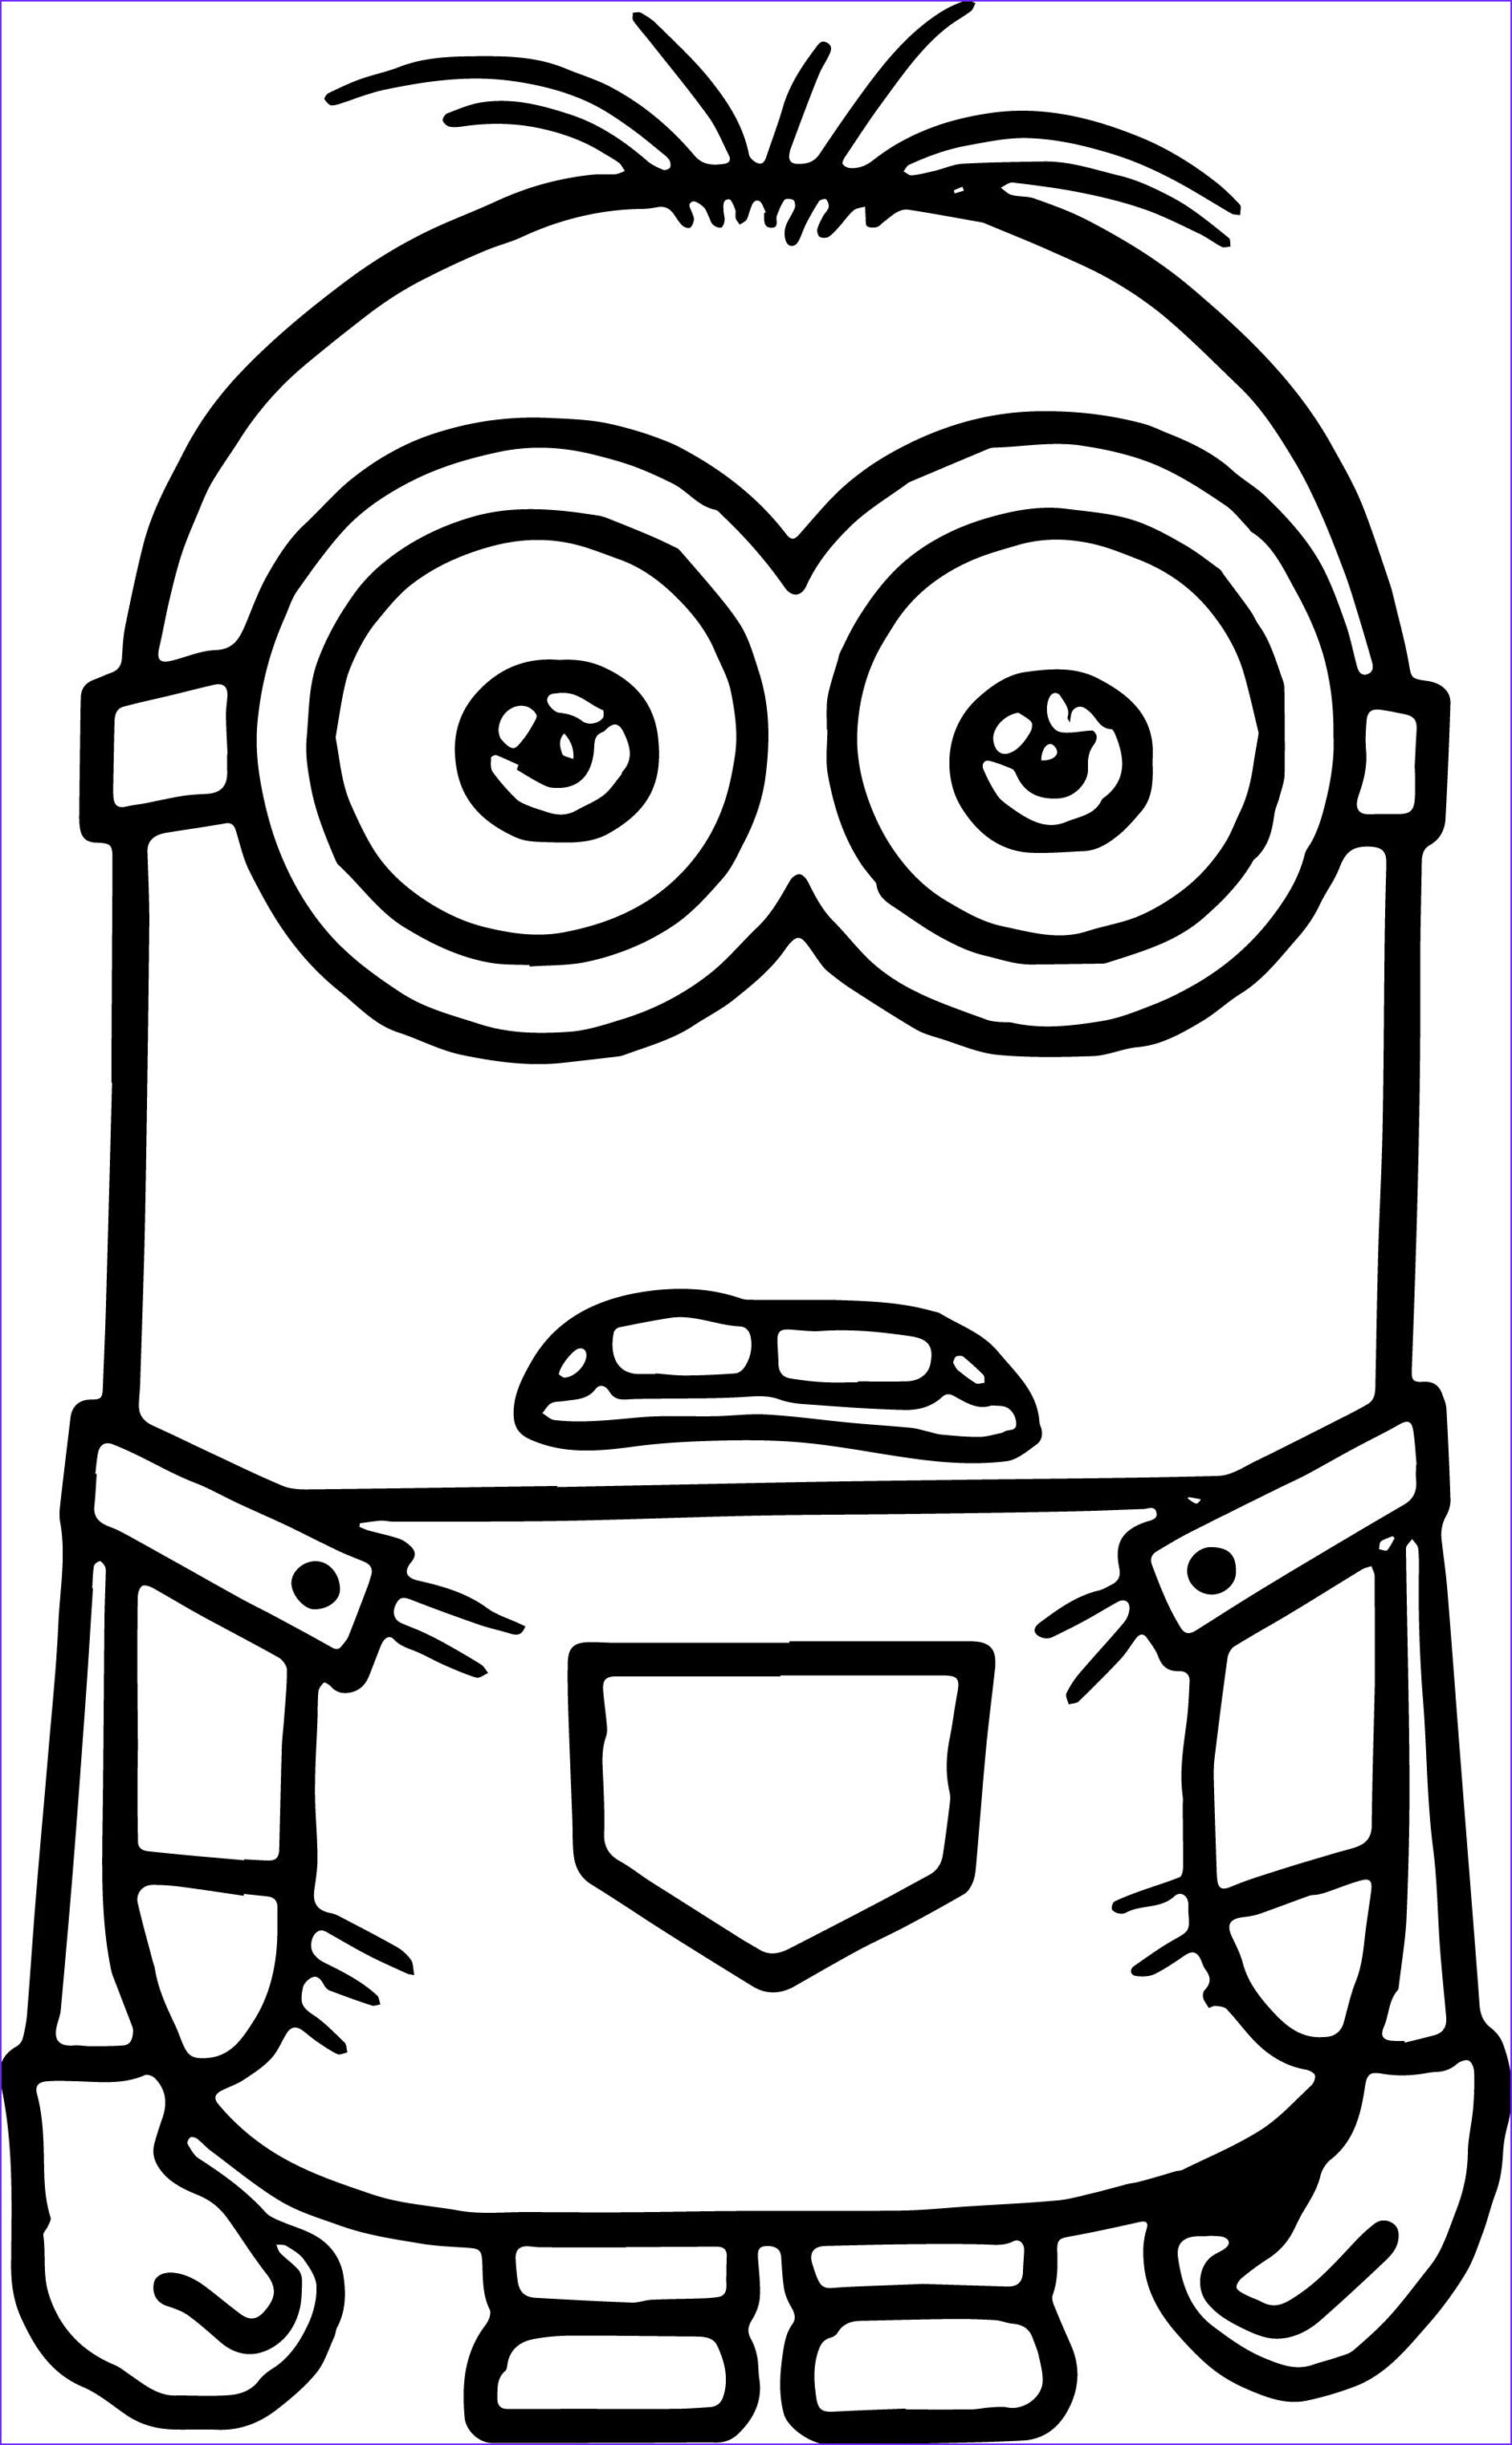 Minions Coloring Pages Luxury Photography Minions Coloring Pages Wecoloringpage